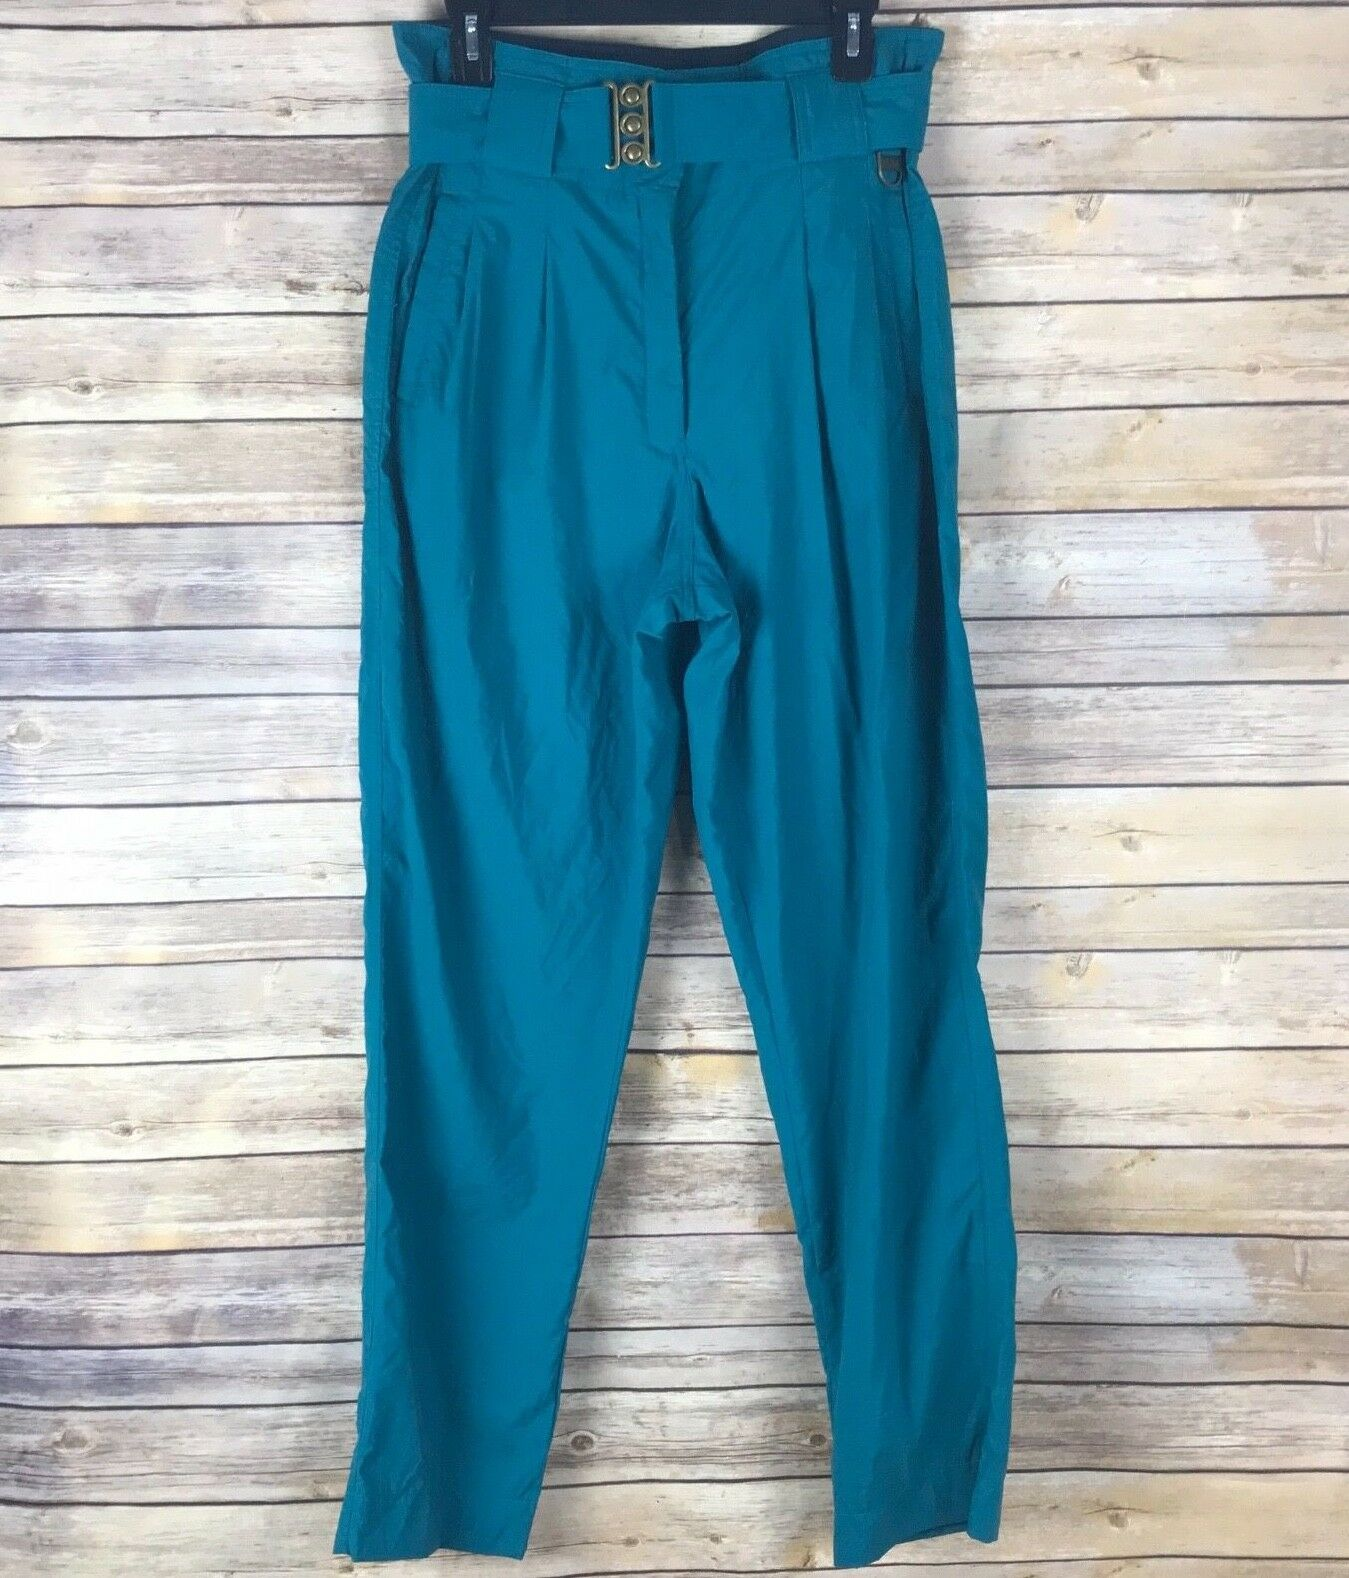 Skyr Women Vintage Snow Pants Pleated Front High Waist Belted Tapered Leg 12